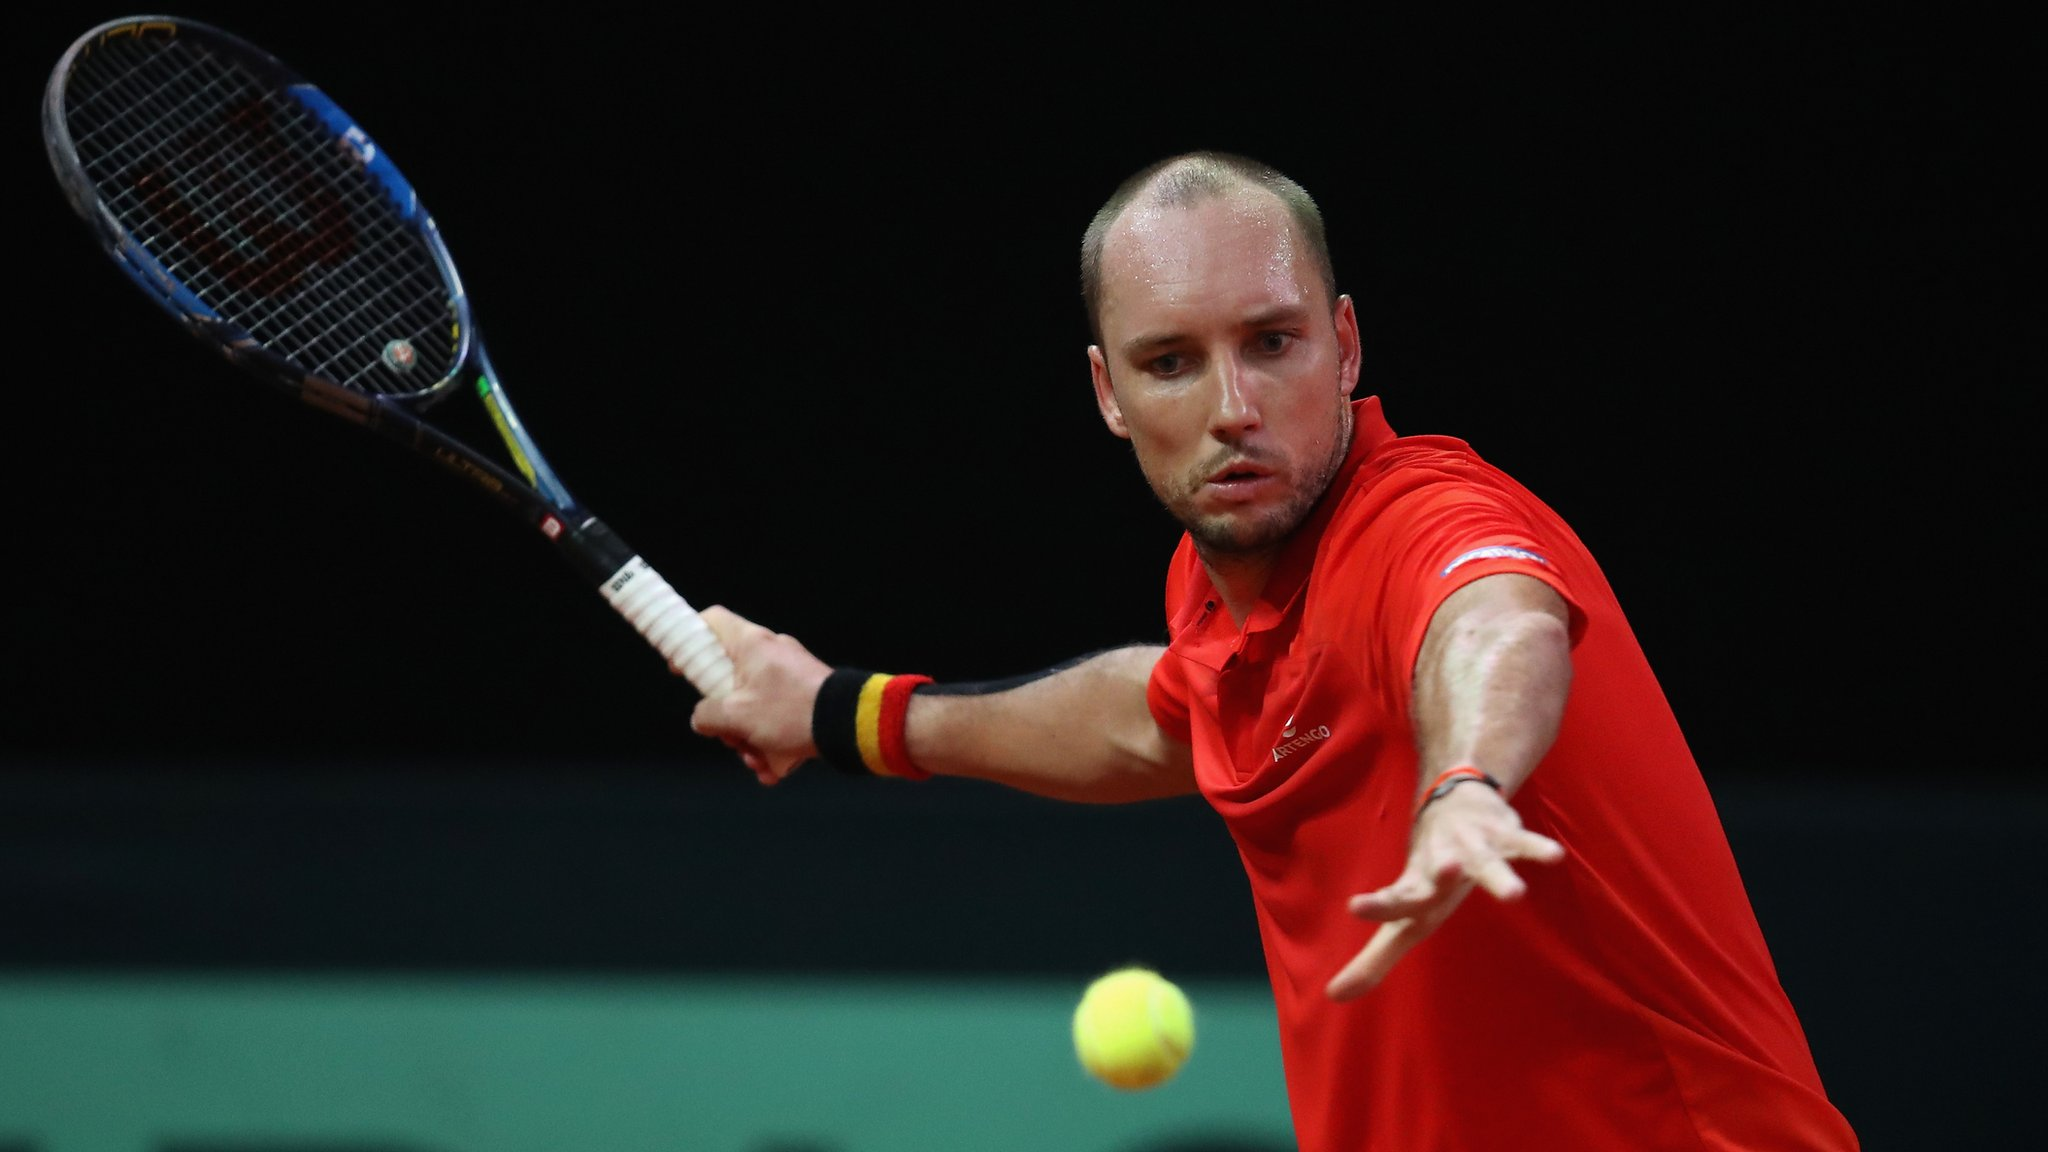 France to host Belgium in Davis Cup final